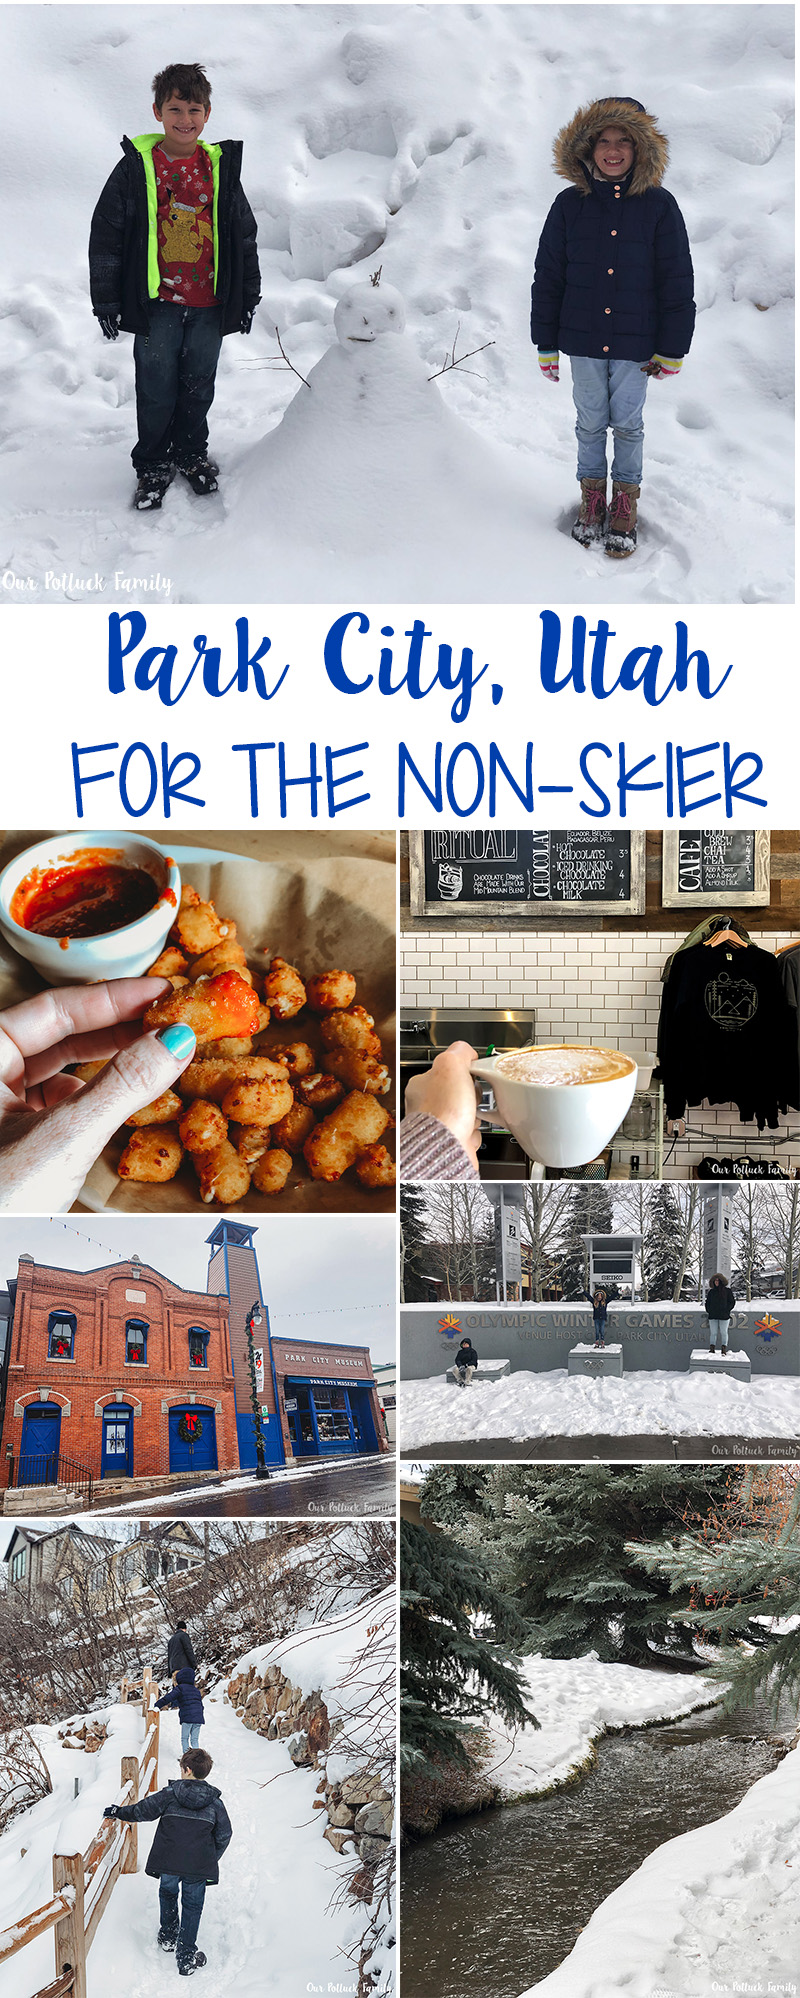 Park City, Utah for the Non-skier